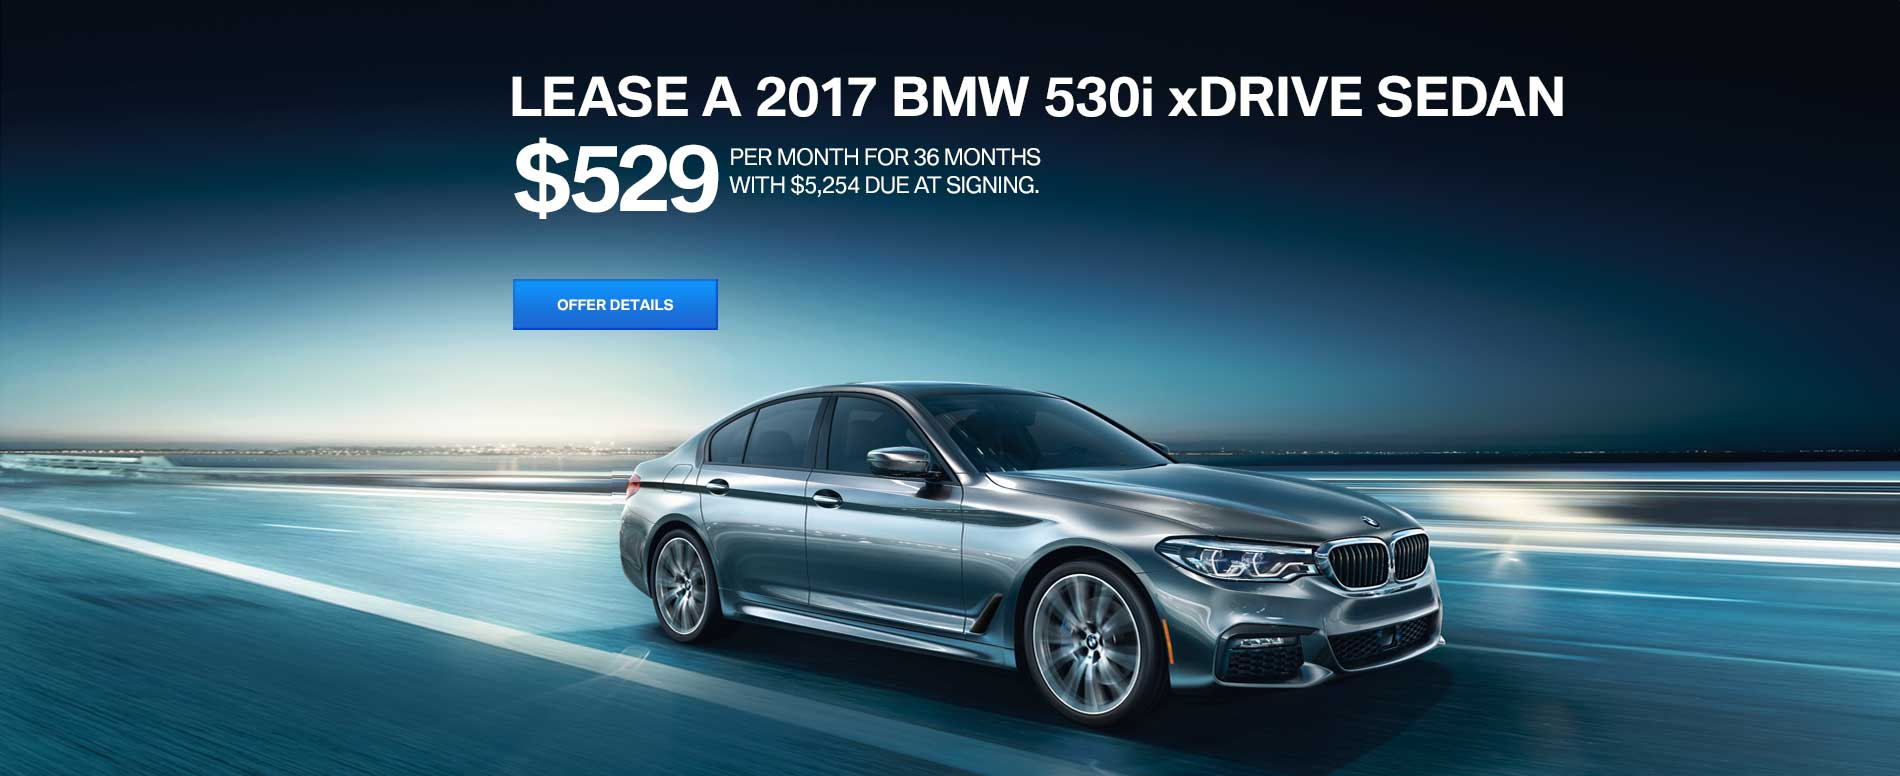 BMW Western Region Lease Offers